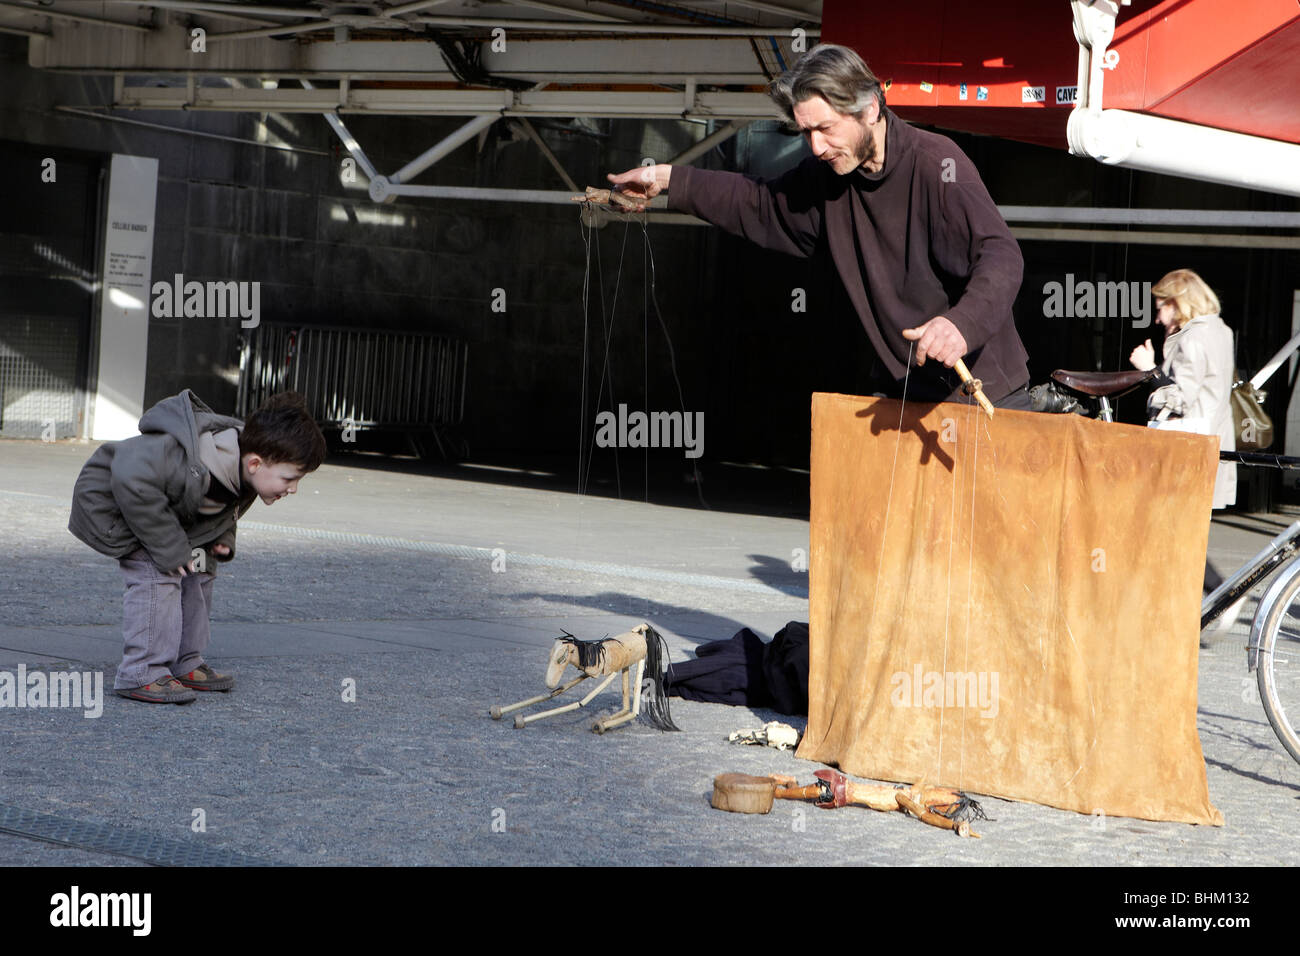 Puppeteer with marionette and small boy, Paris, France - Stock Image